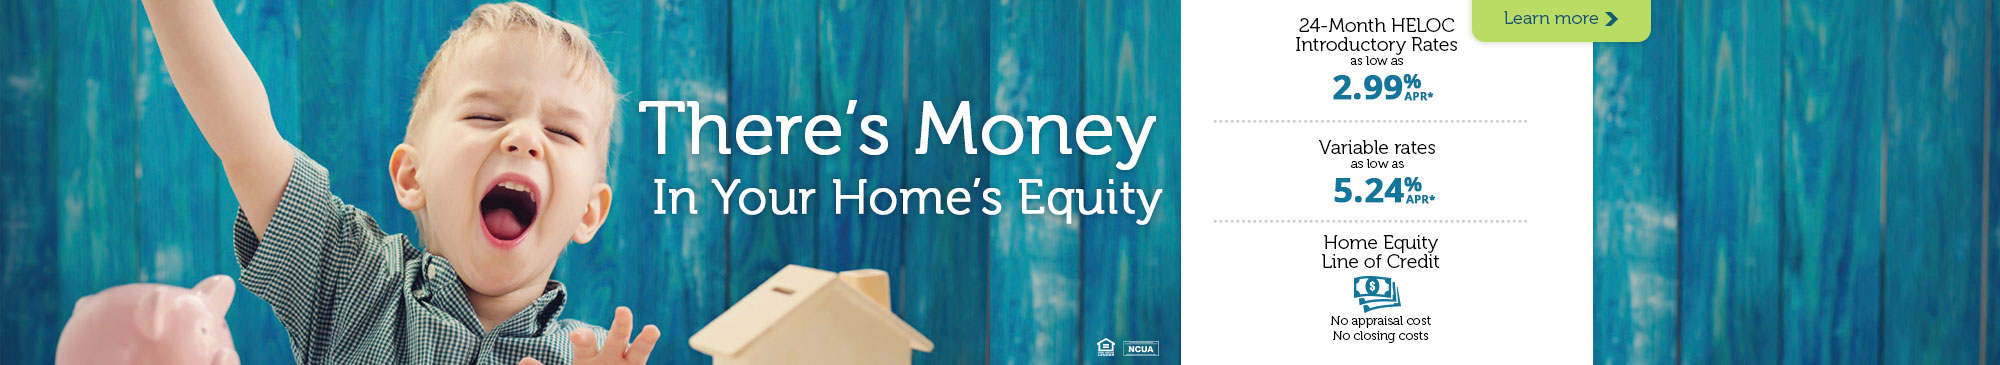 home equity loan, young boy celebrating with piggy bank and toy house